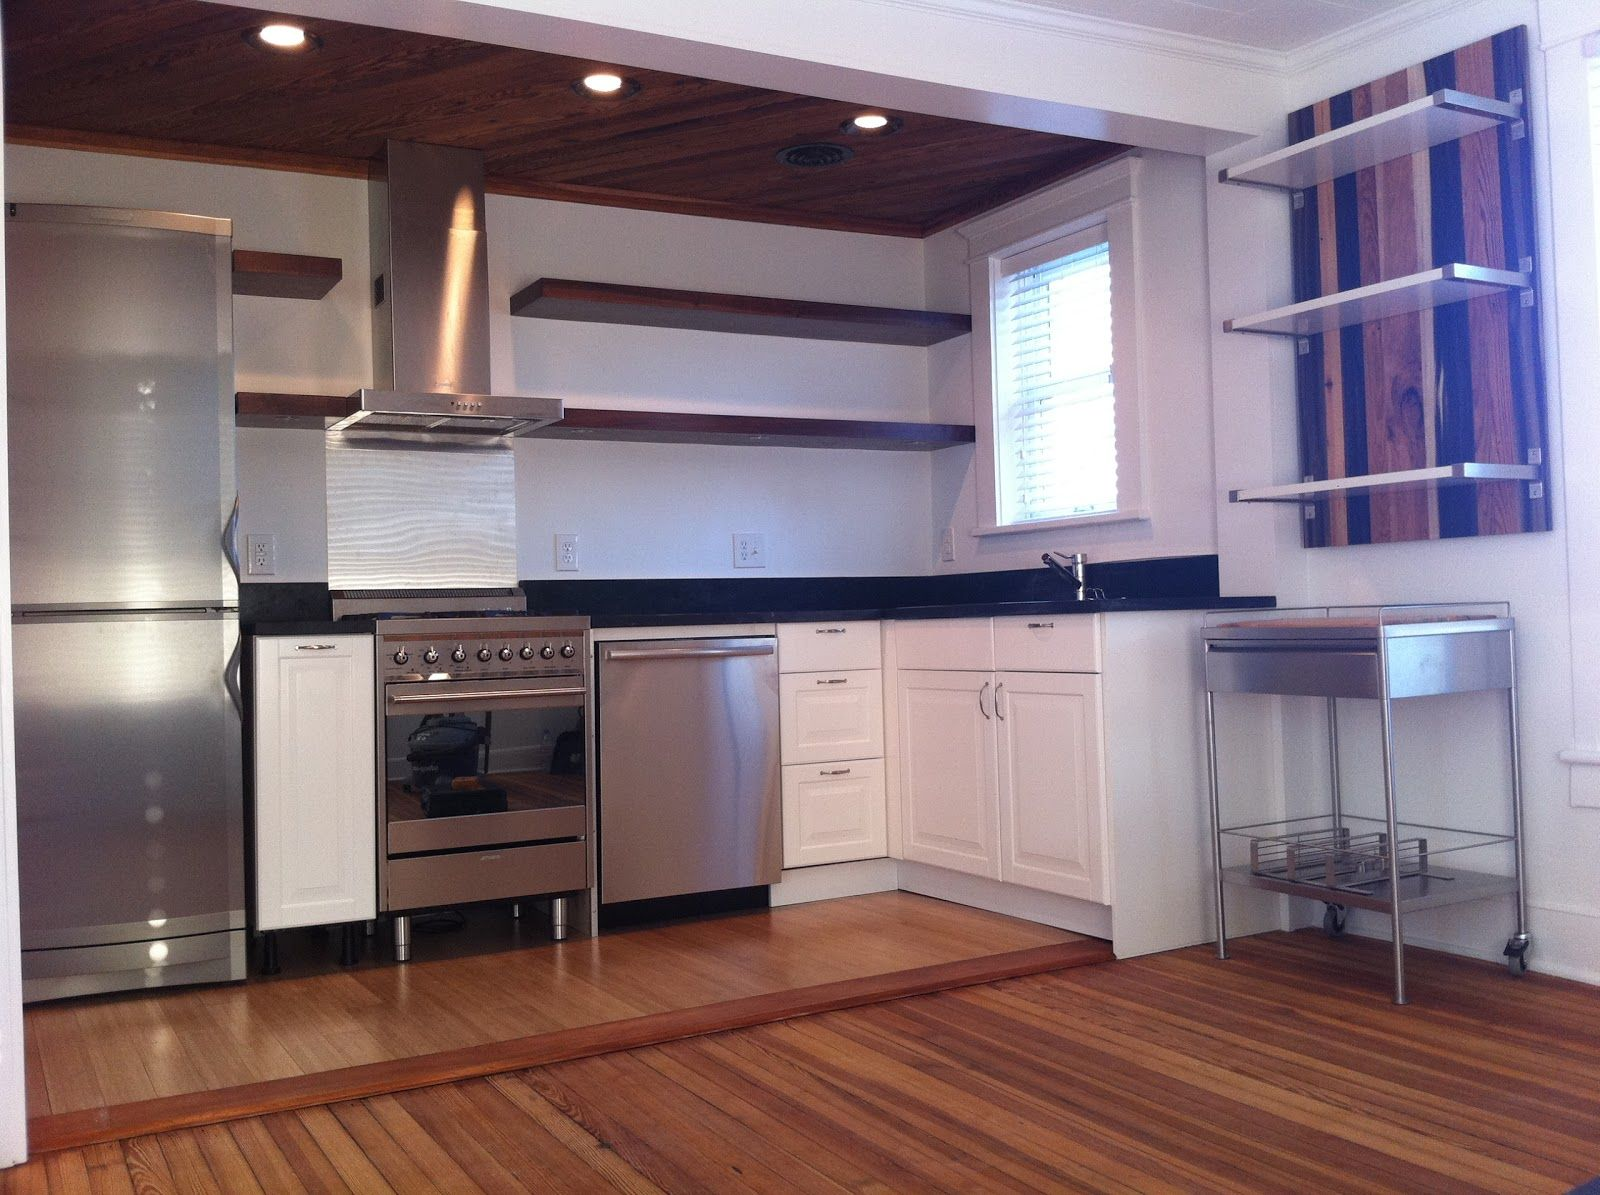 Build Simple Floating Kitchen Shelves In 2020 Kitchen Cabinets For Sale Metal Kitchen Cabinets Used Kitchen Cabinets